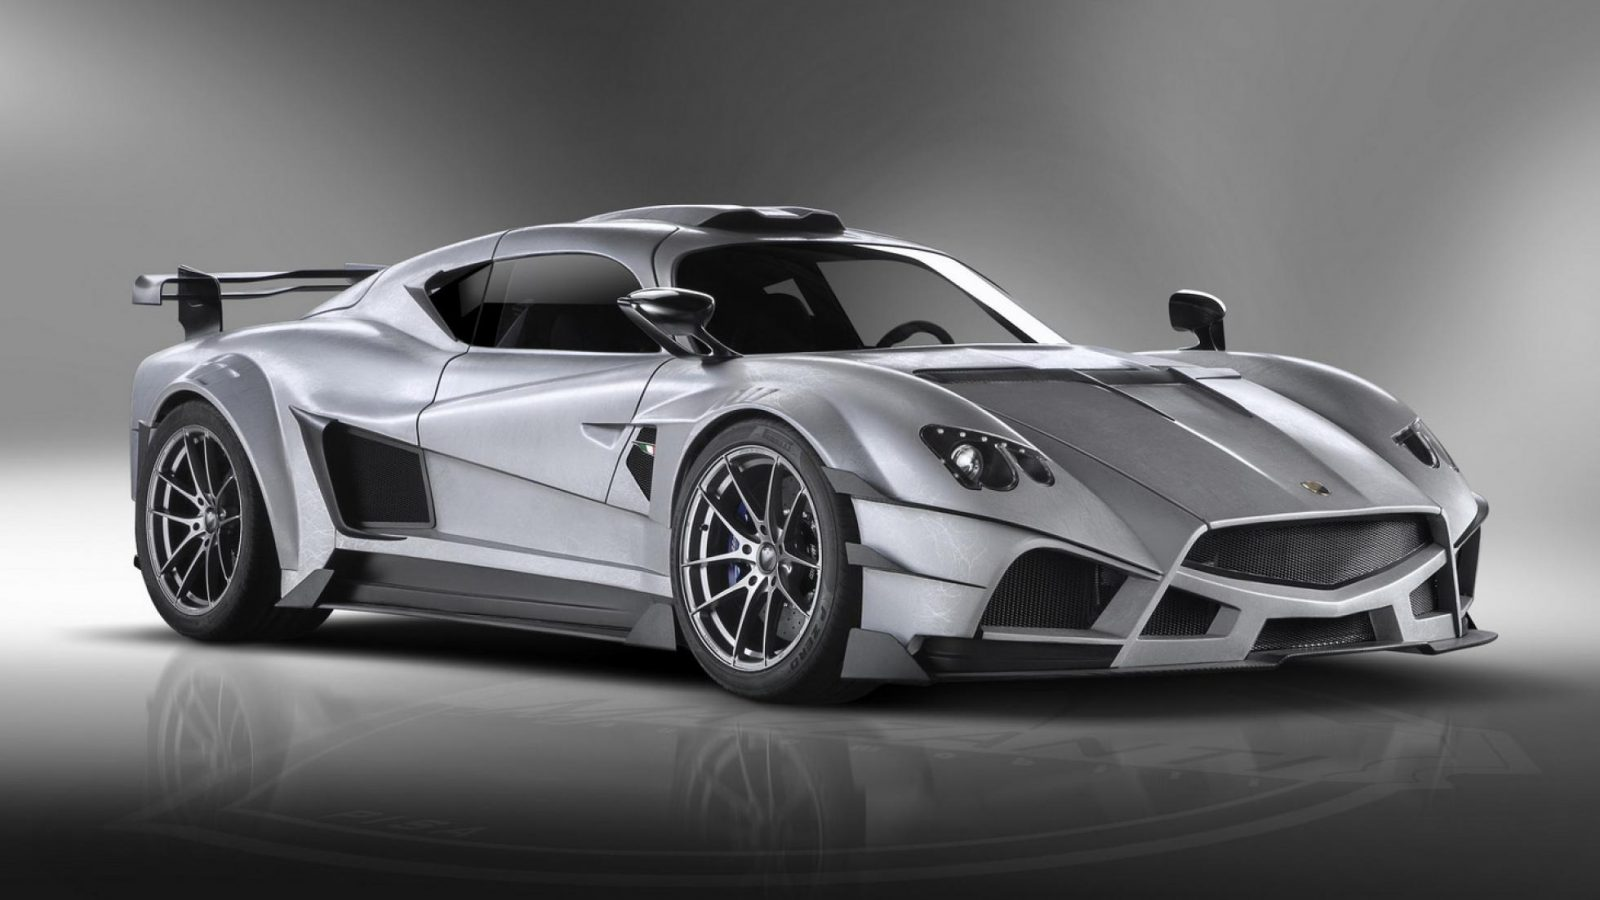 new-mazzanti-evantra-supercar-spied-in-italy-expect-at-least-800-hp_5